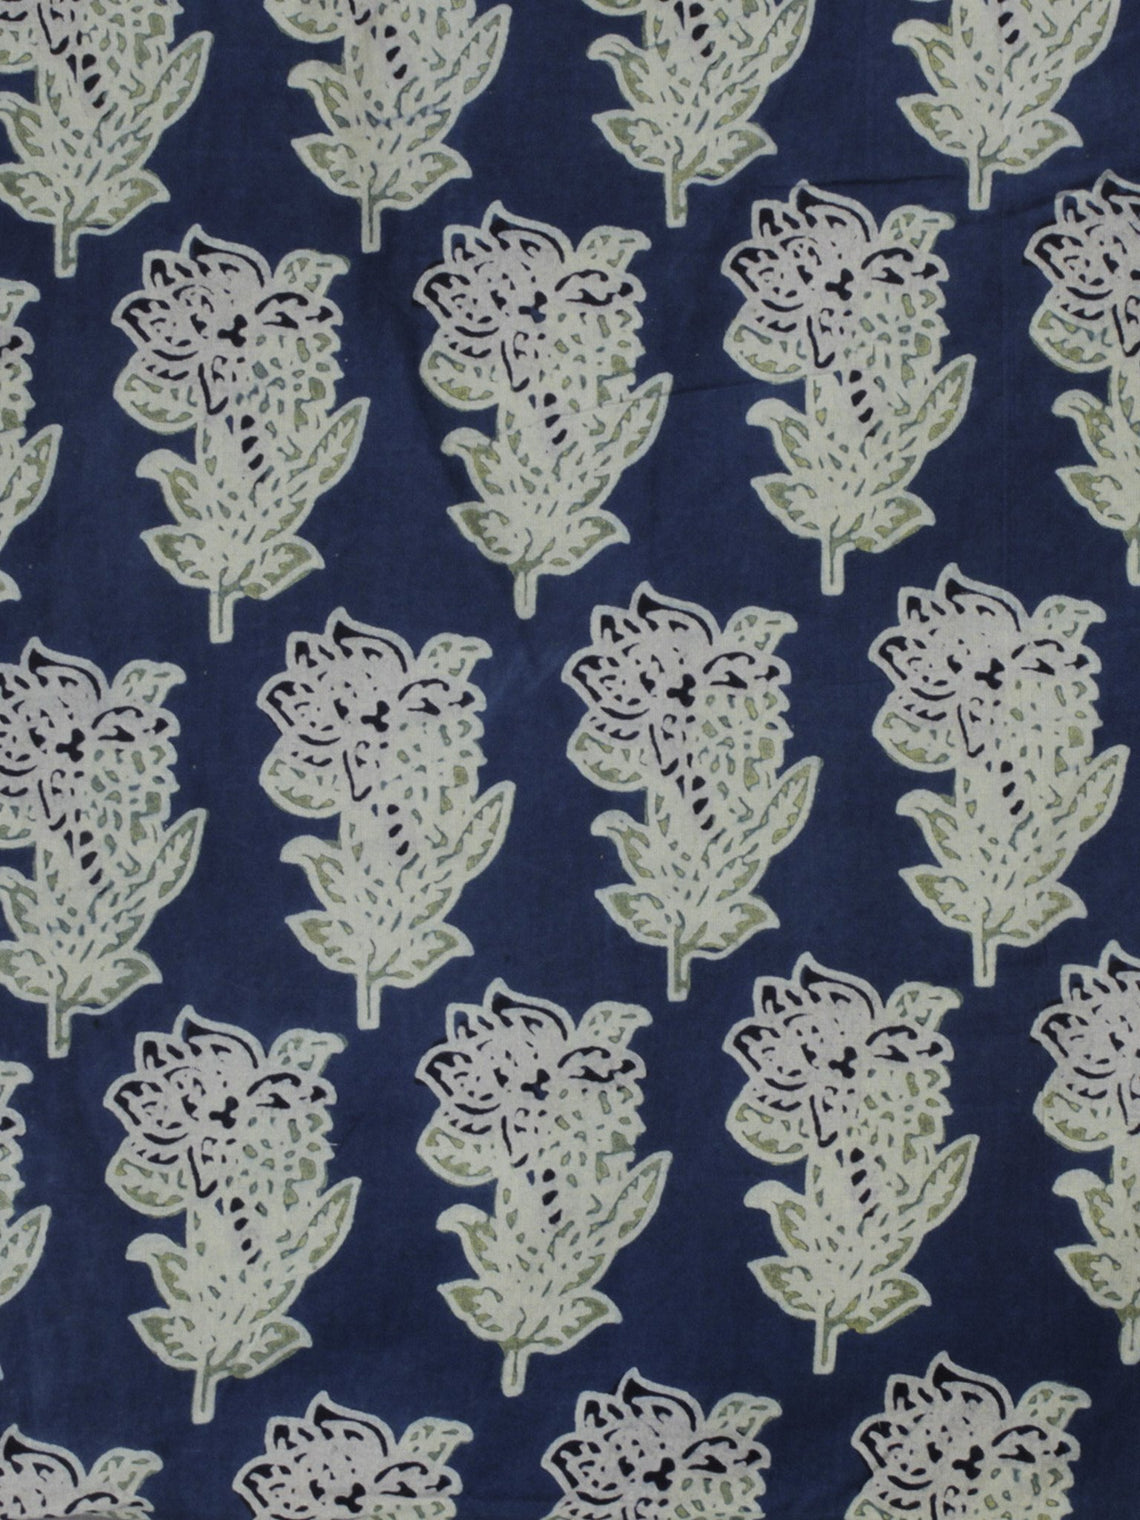 Indigo Mint Green Ivory Ajrakh Block Printed Cotton Fabric Per Meter - F003F642